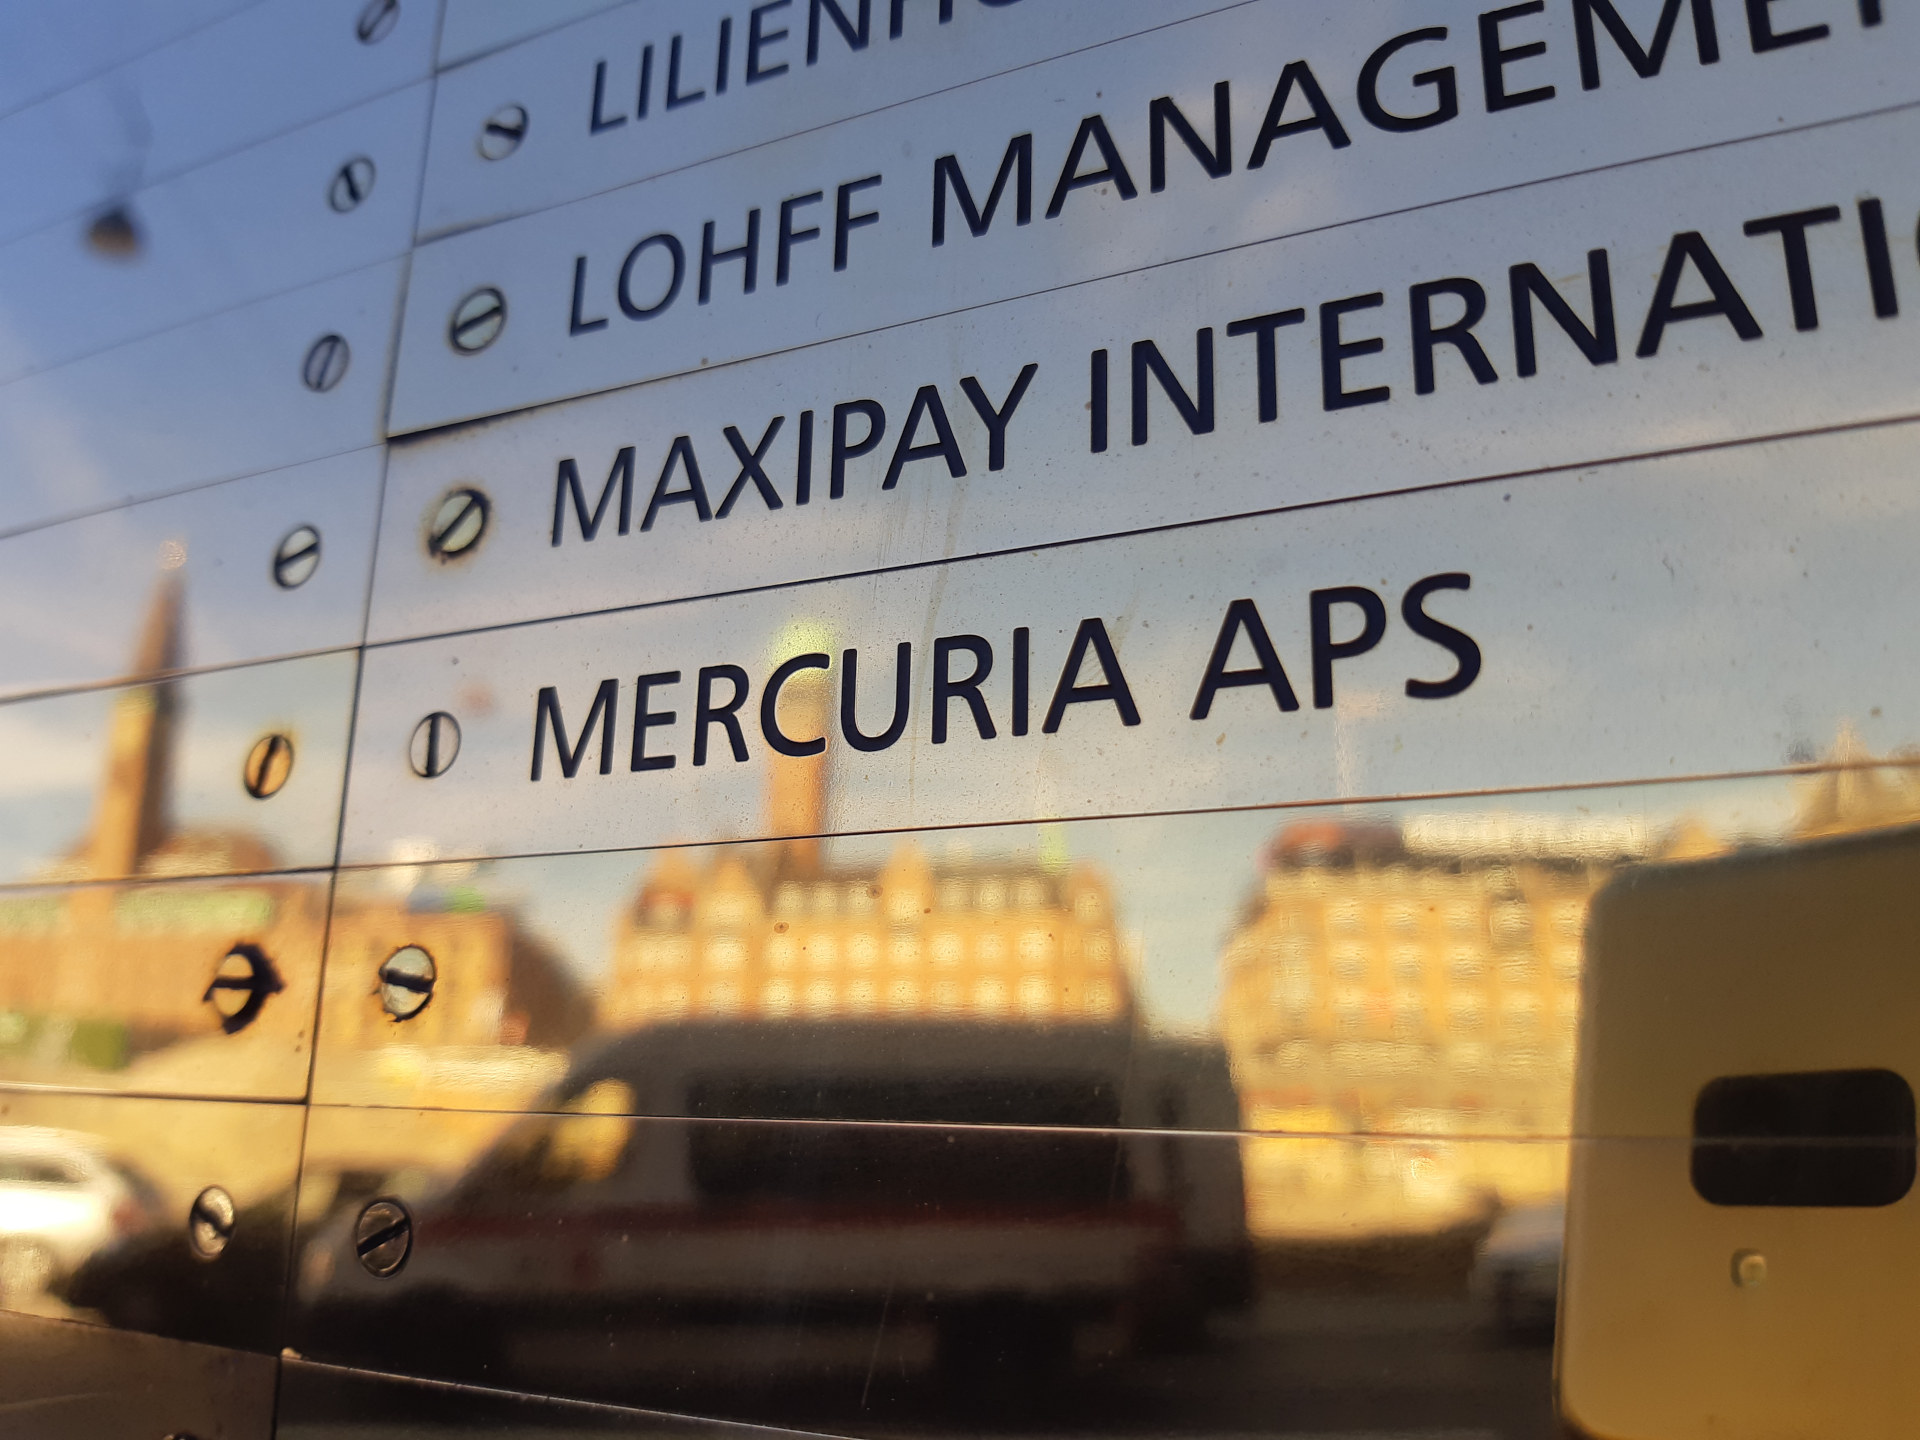 Mercuria is an accounting firm.